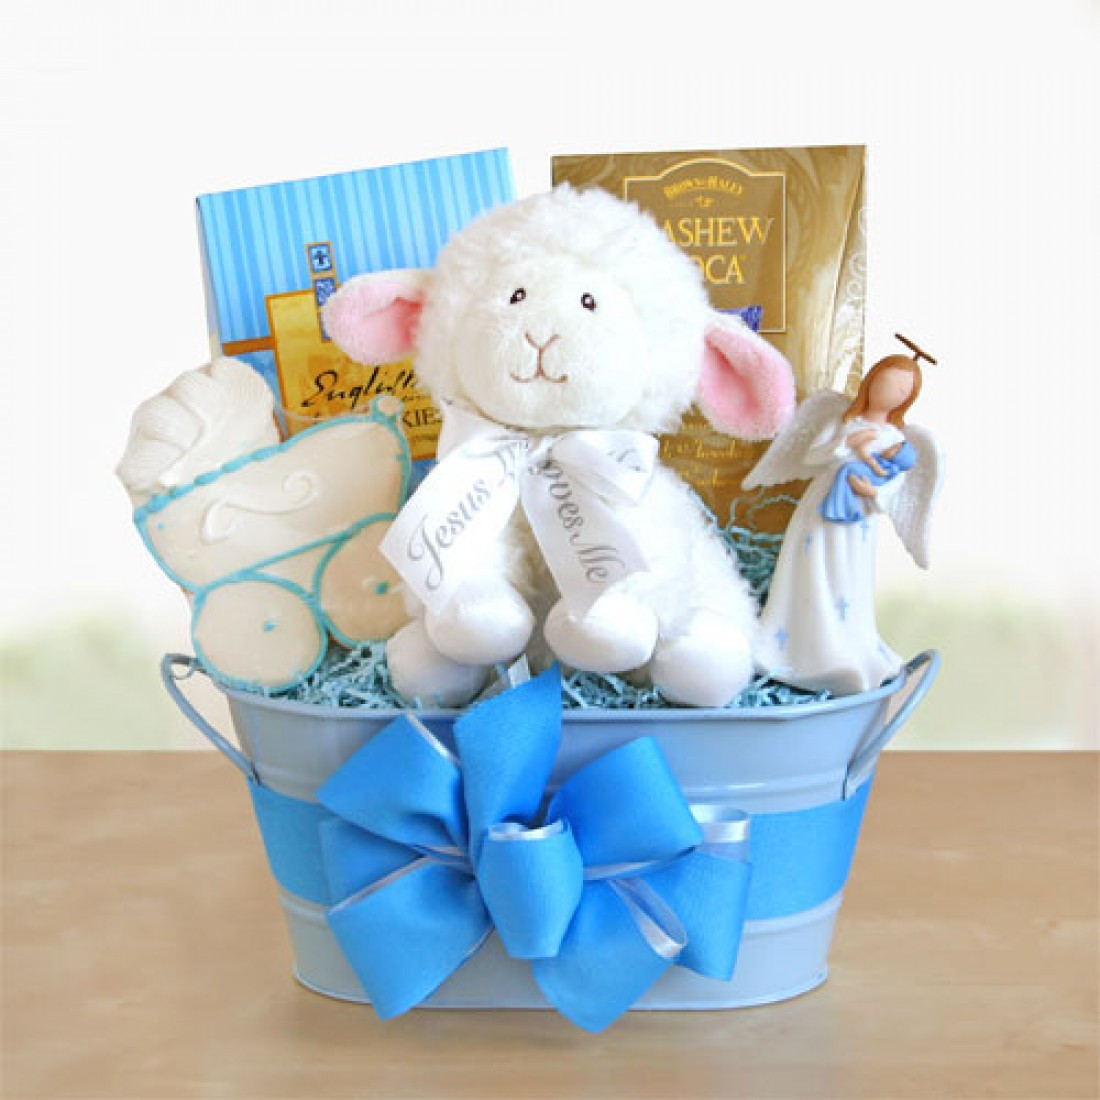 Best ideas about Christening Gift Ideas For Baby Boy . Save or Pin Blue Boy Christening Gift Baskets Now.